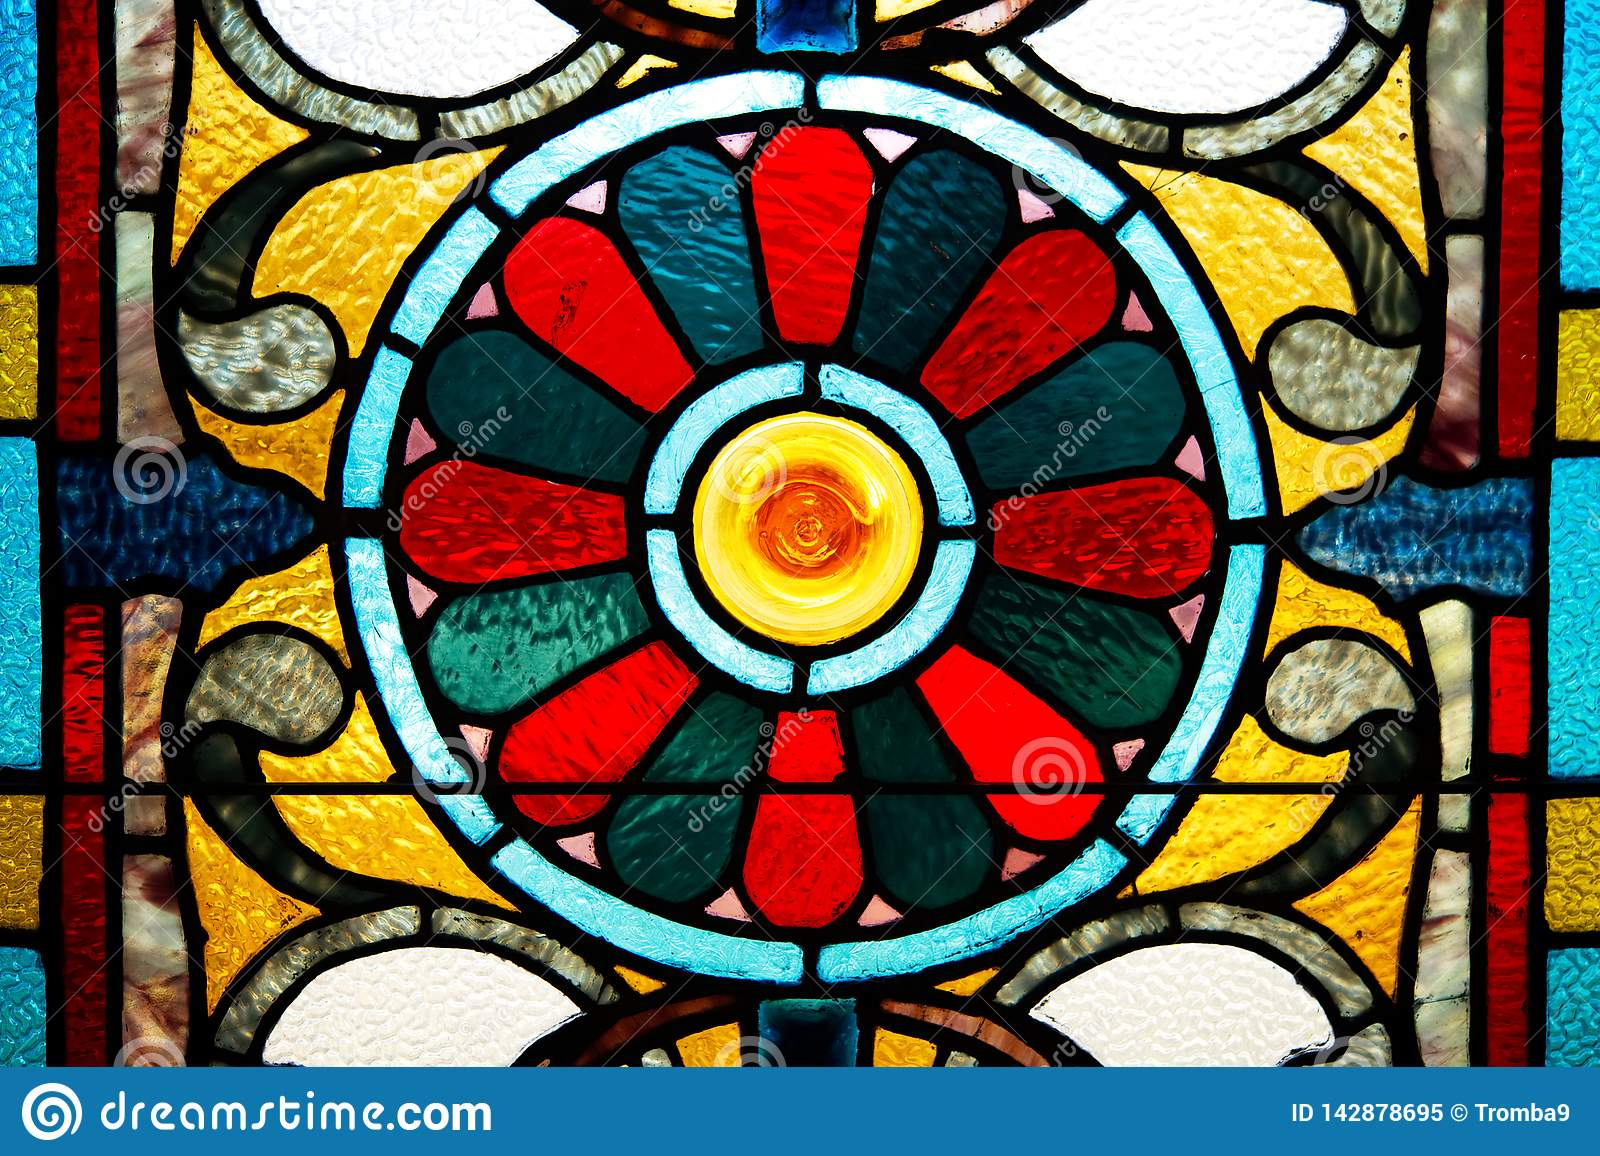 A closeup of a stained glass window.